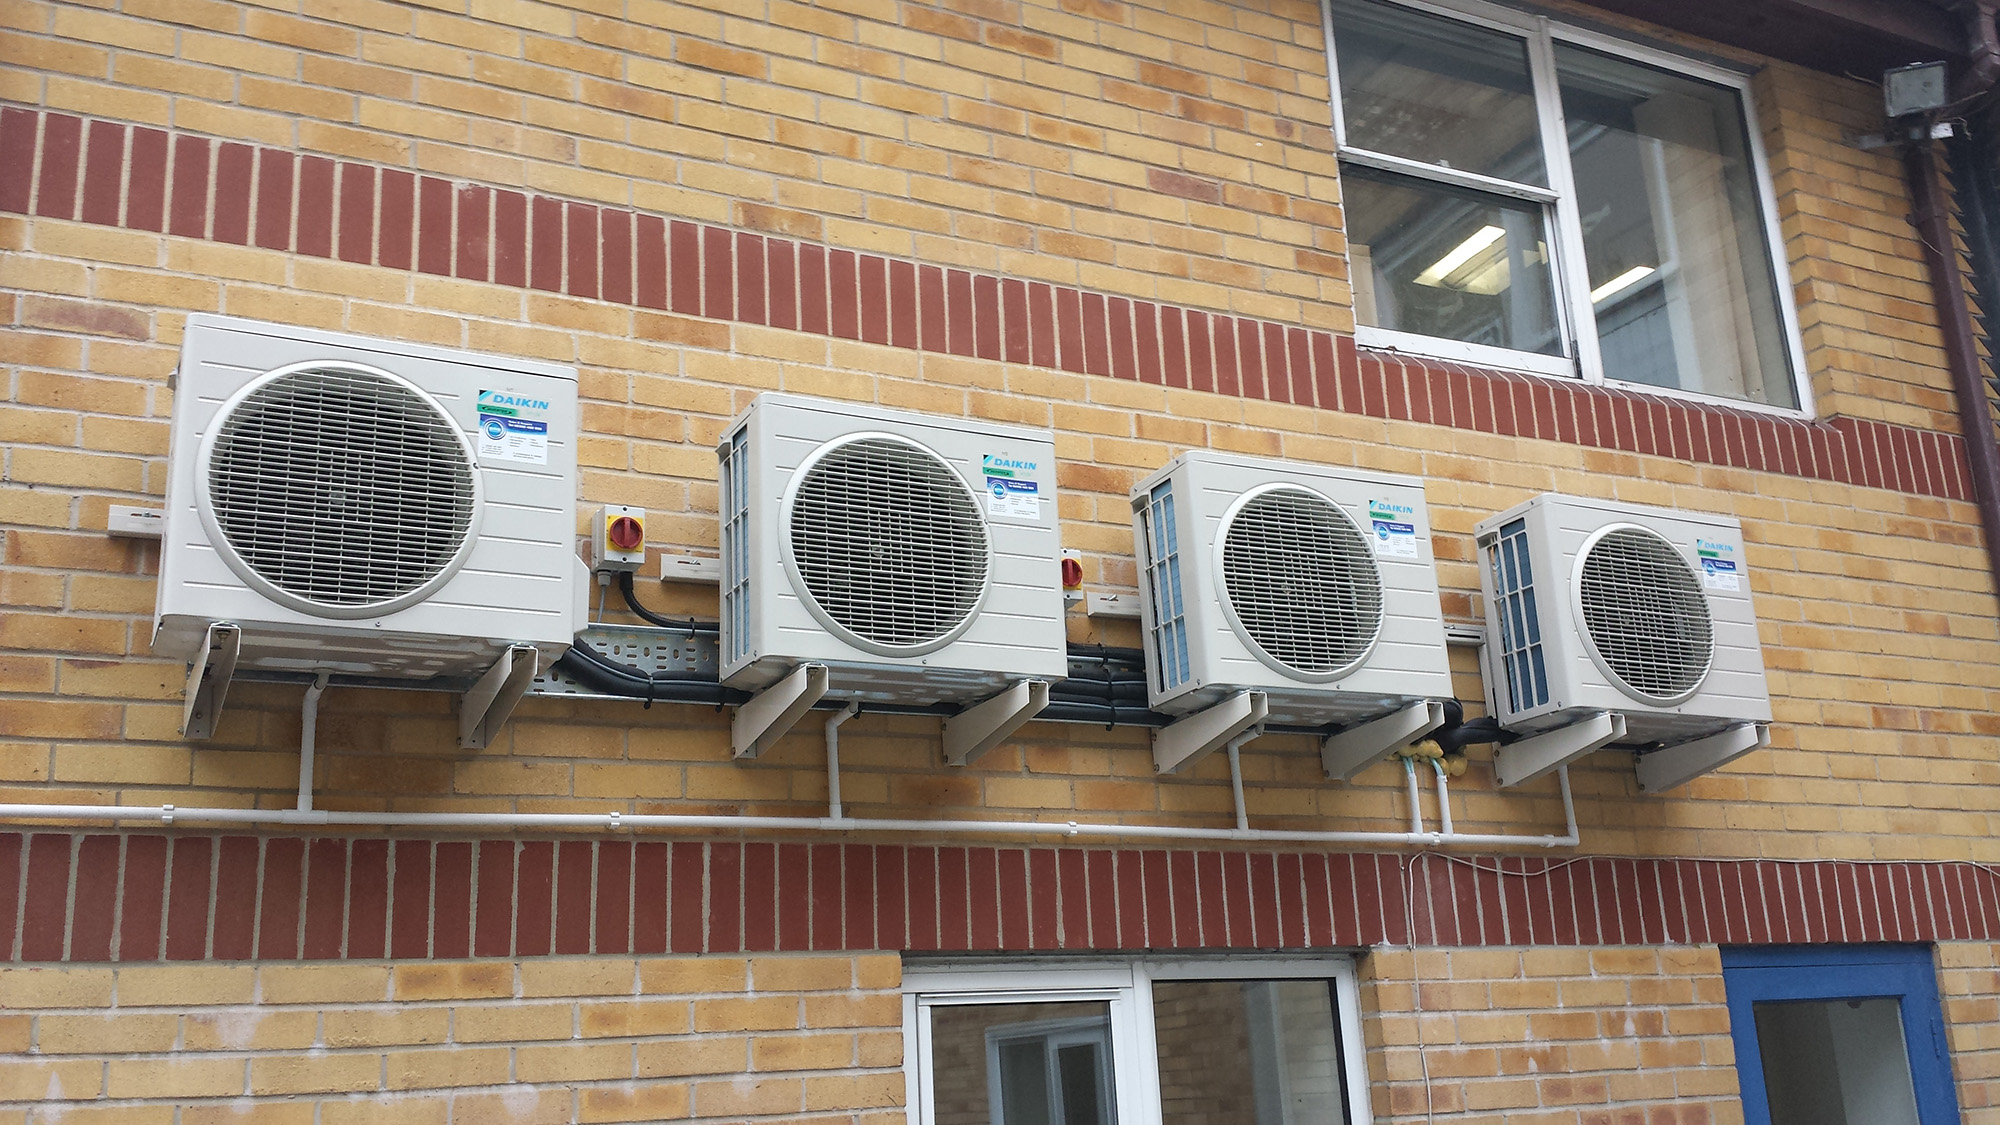 Bespoke air conditioning